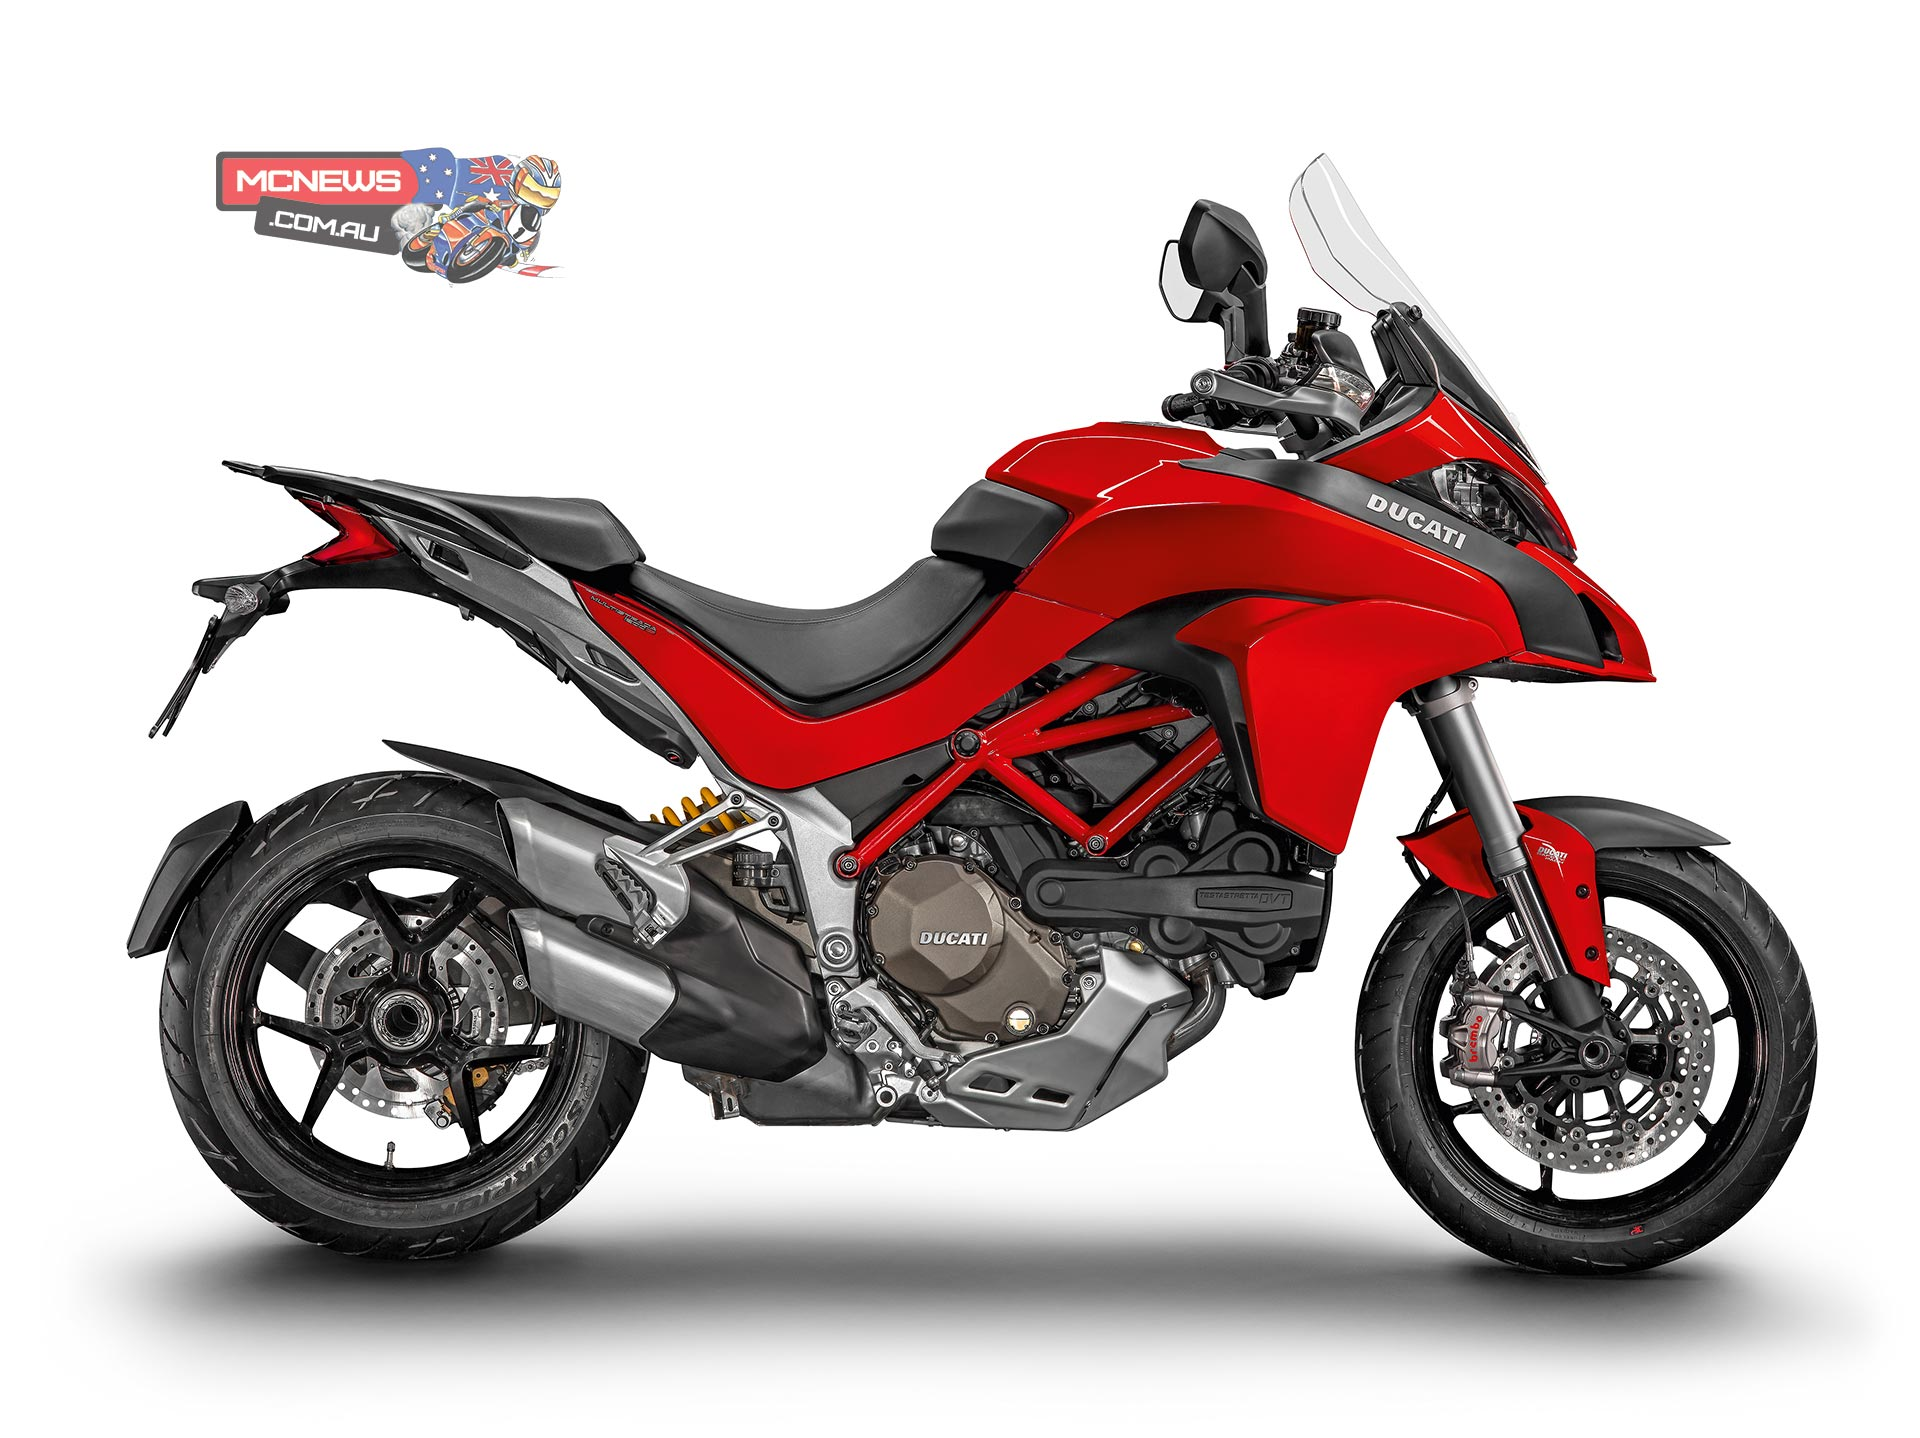 It's also a World Première for the new generation of Multistrada 1200 bikes, featuring the latest Ducati Testastretta DVT (Desmodromic Variable Timing) engine. In what is a first for the motorcycle industry, the DVT engine features a variable valve timing system with independent control of both the intake and exhaust camshafts.